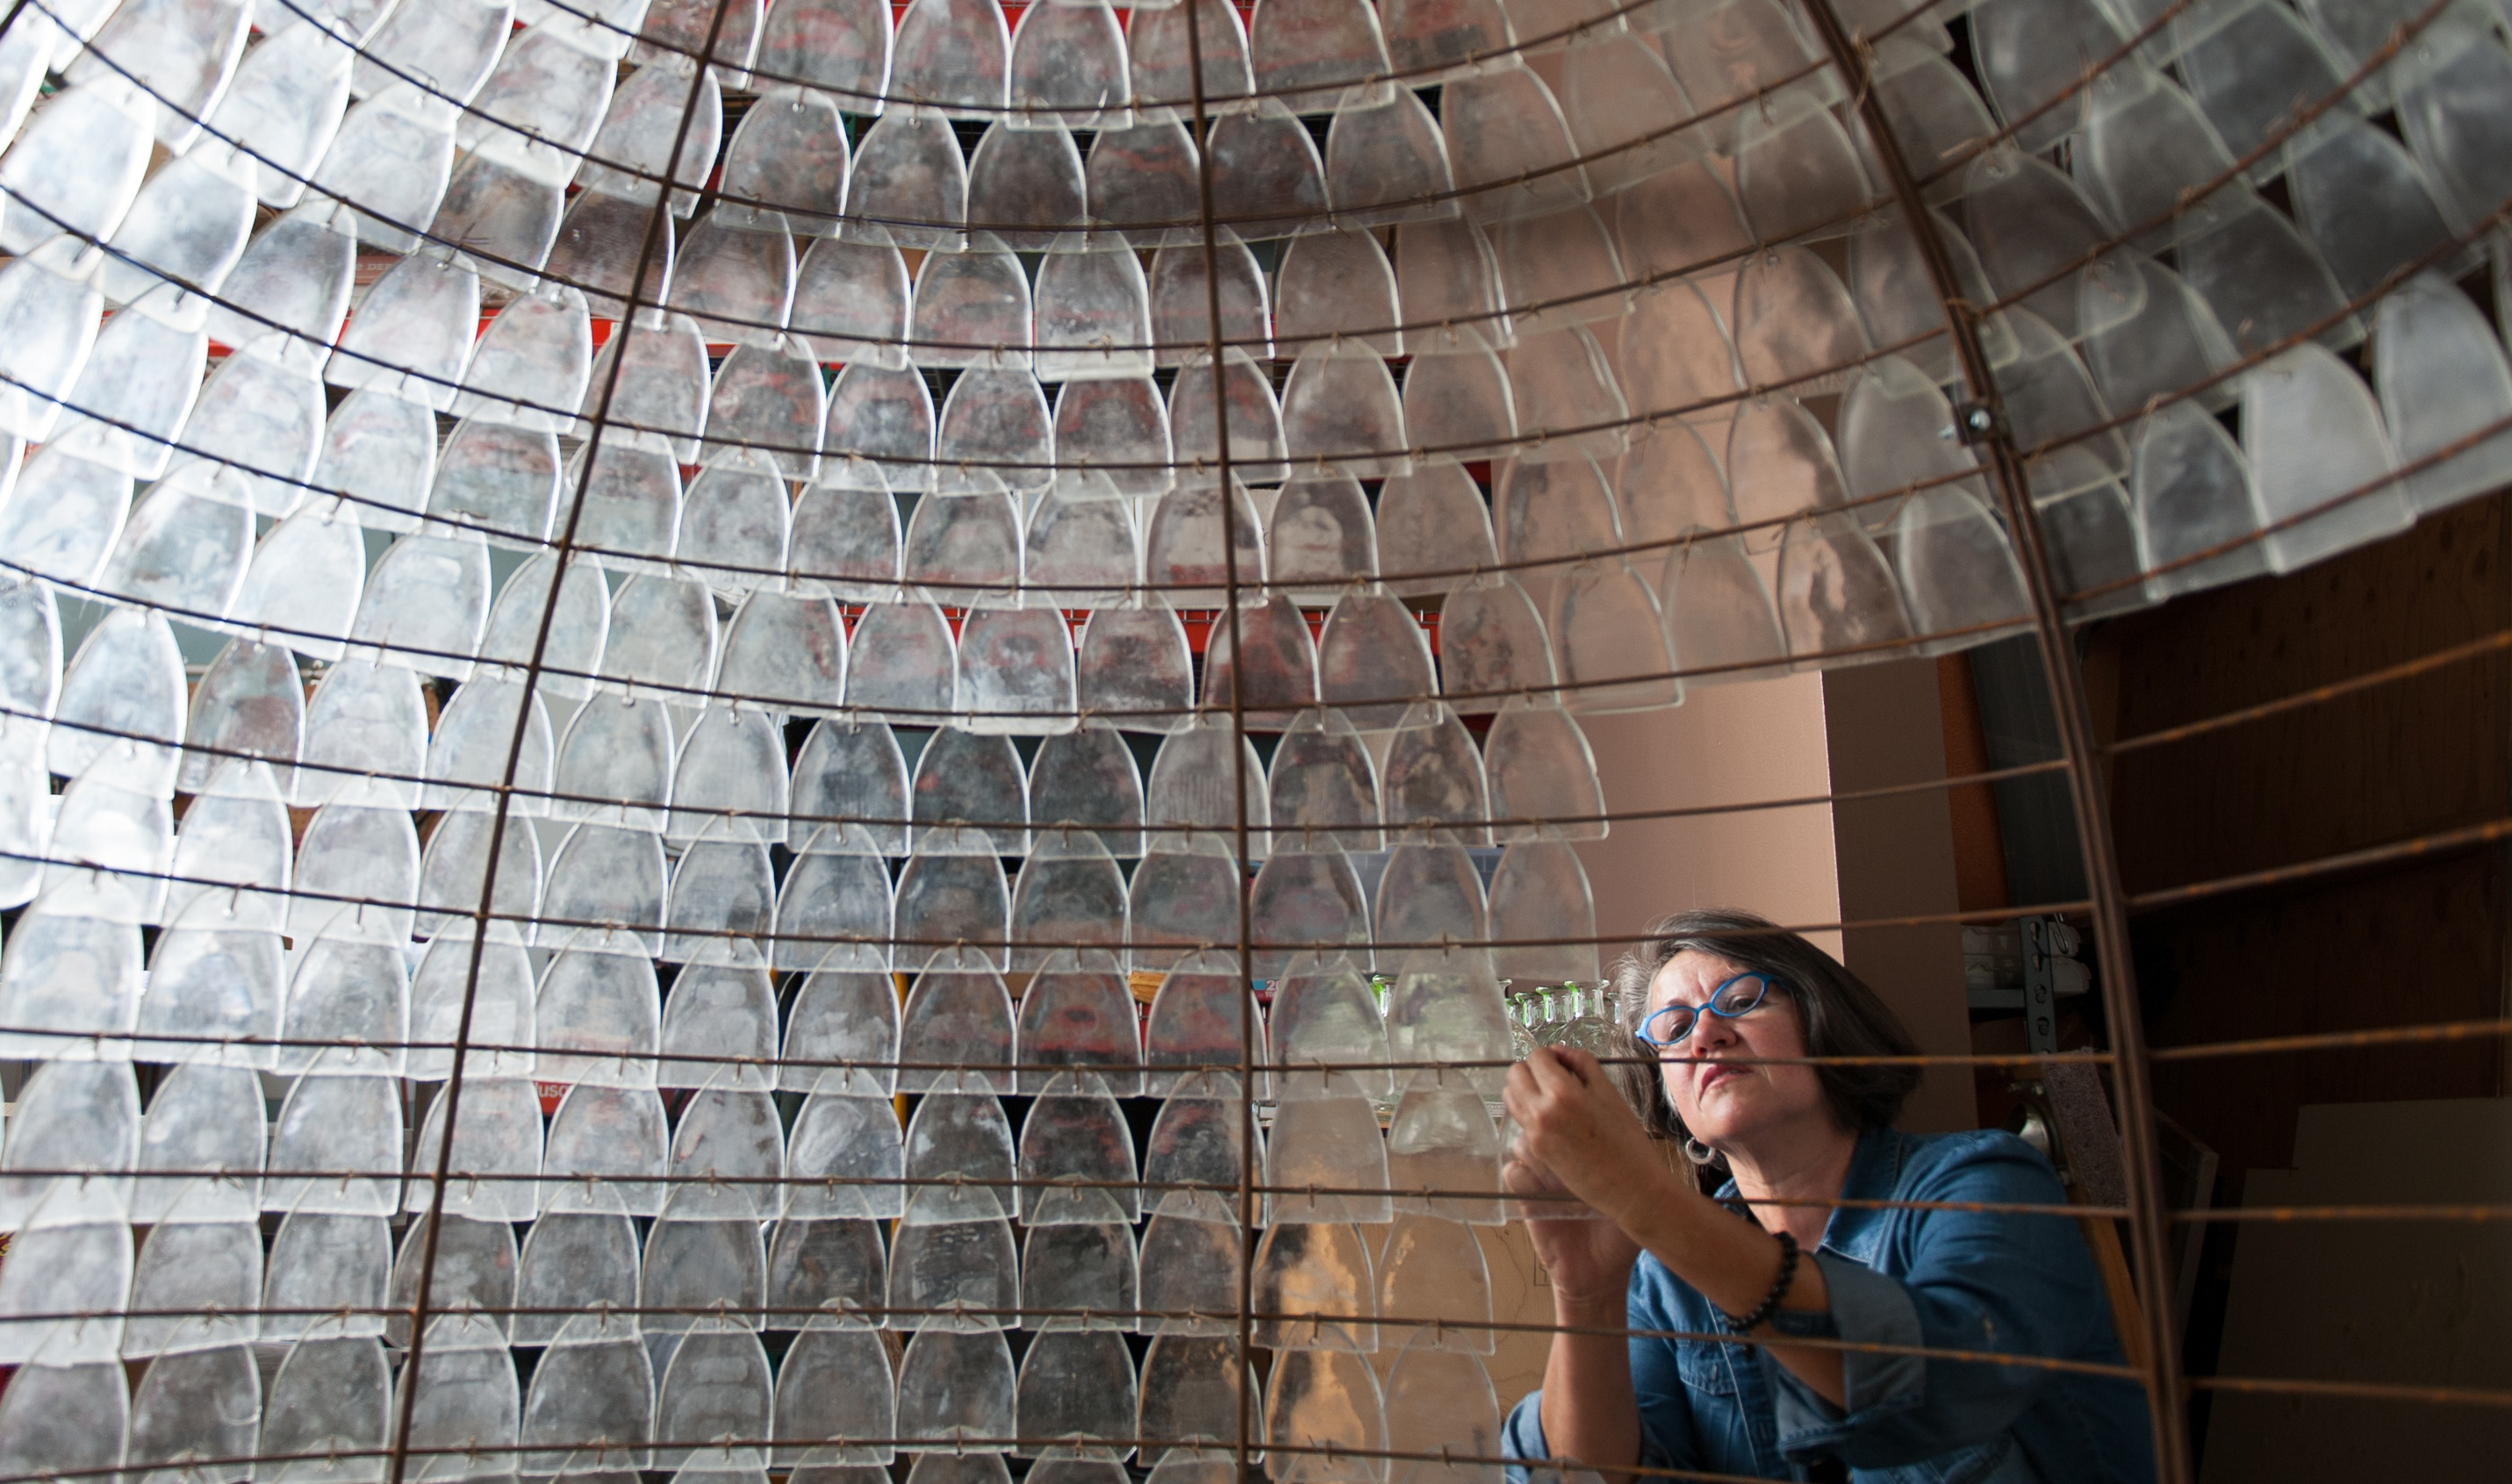 The House that Tequila Built – Viviana Paredes at work